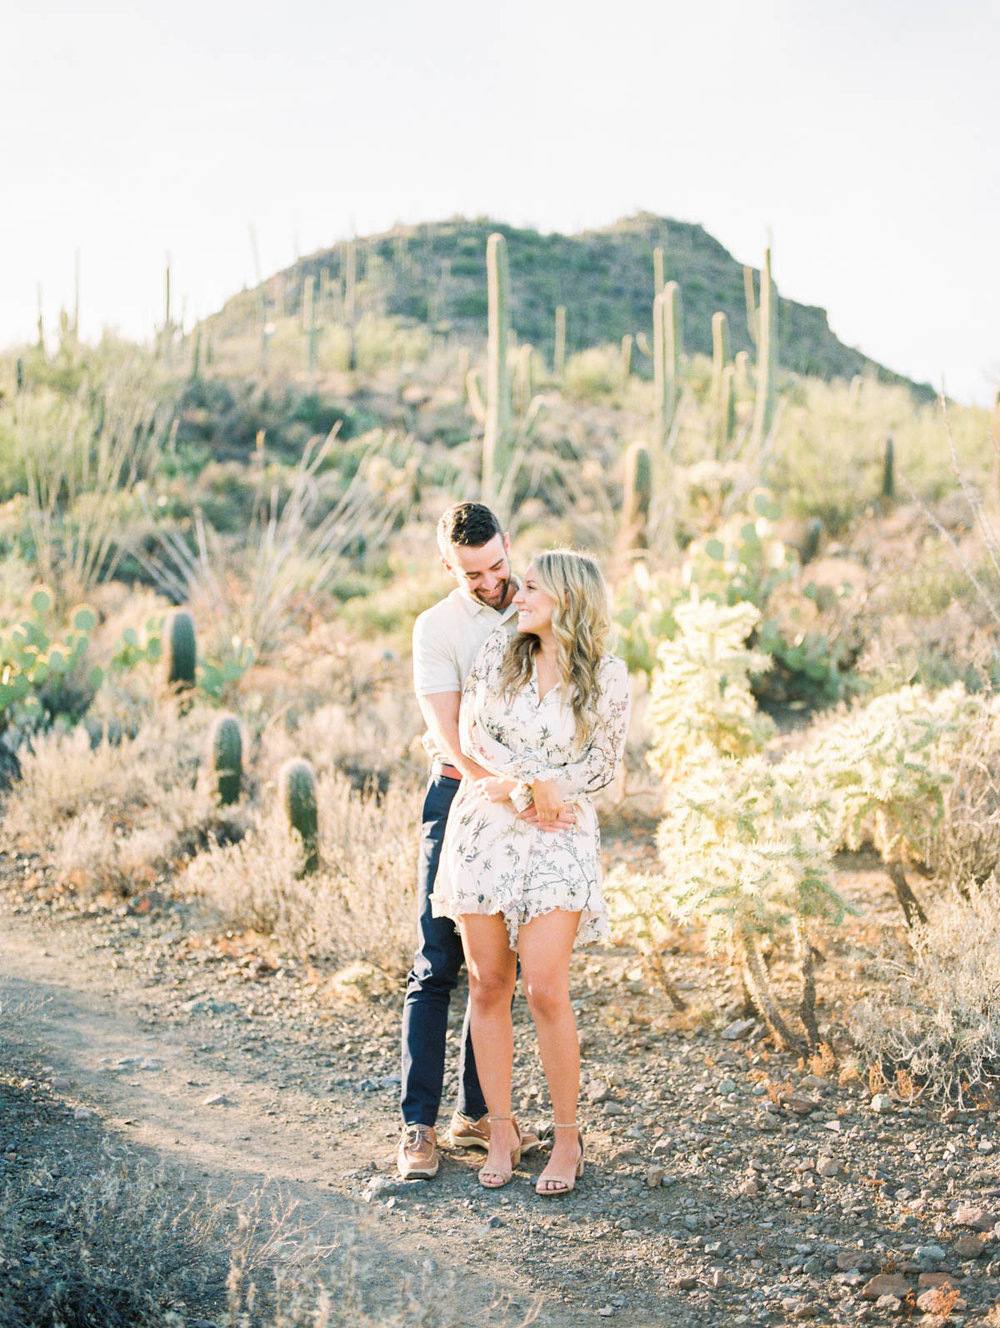 tucson-desert-engagement-session-25.jpg